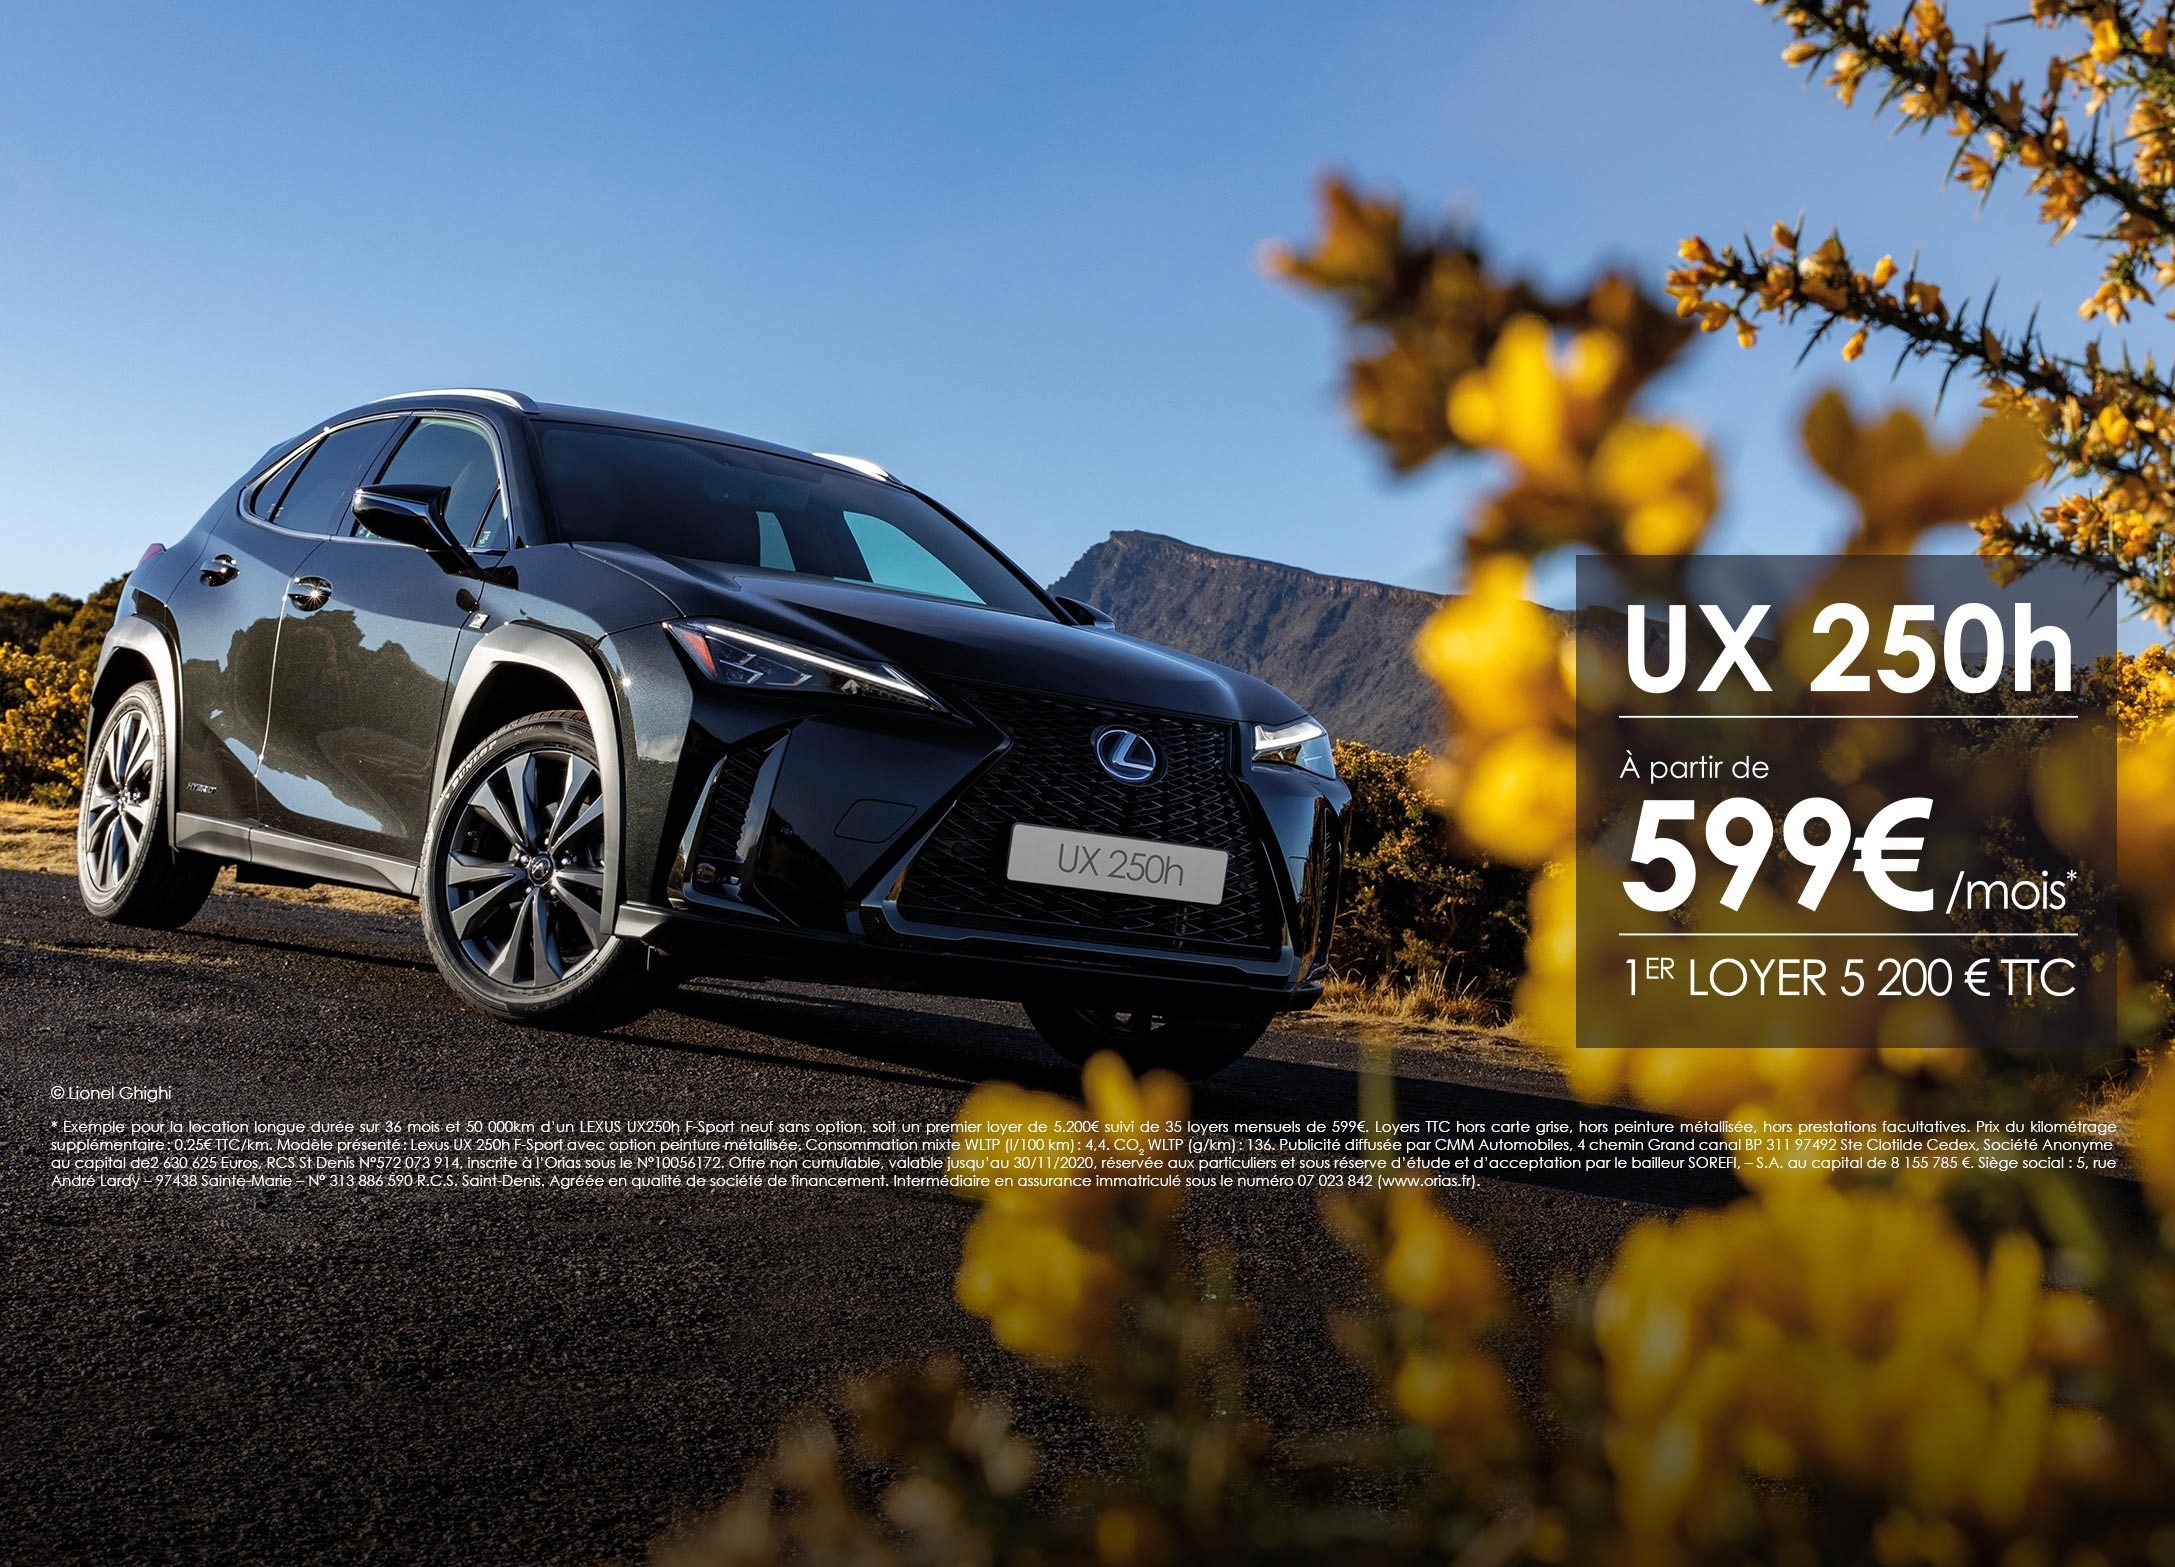 UX 250H - Octobre 2020 - Lexus.re